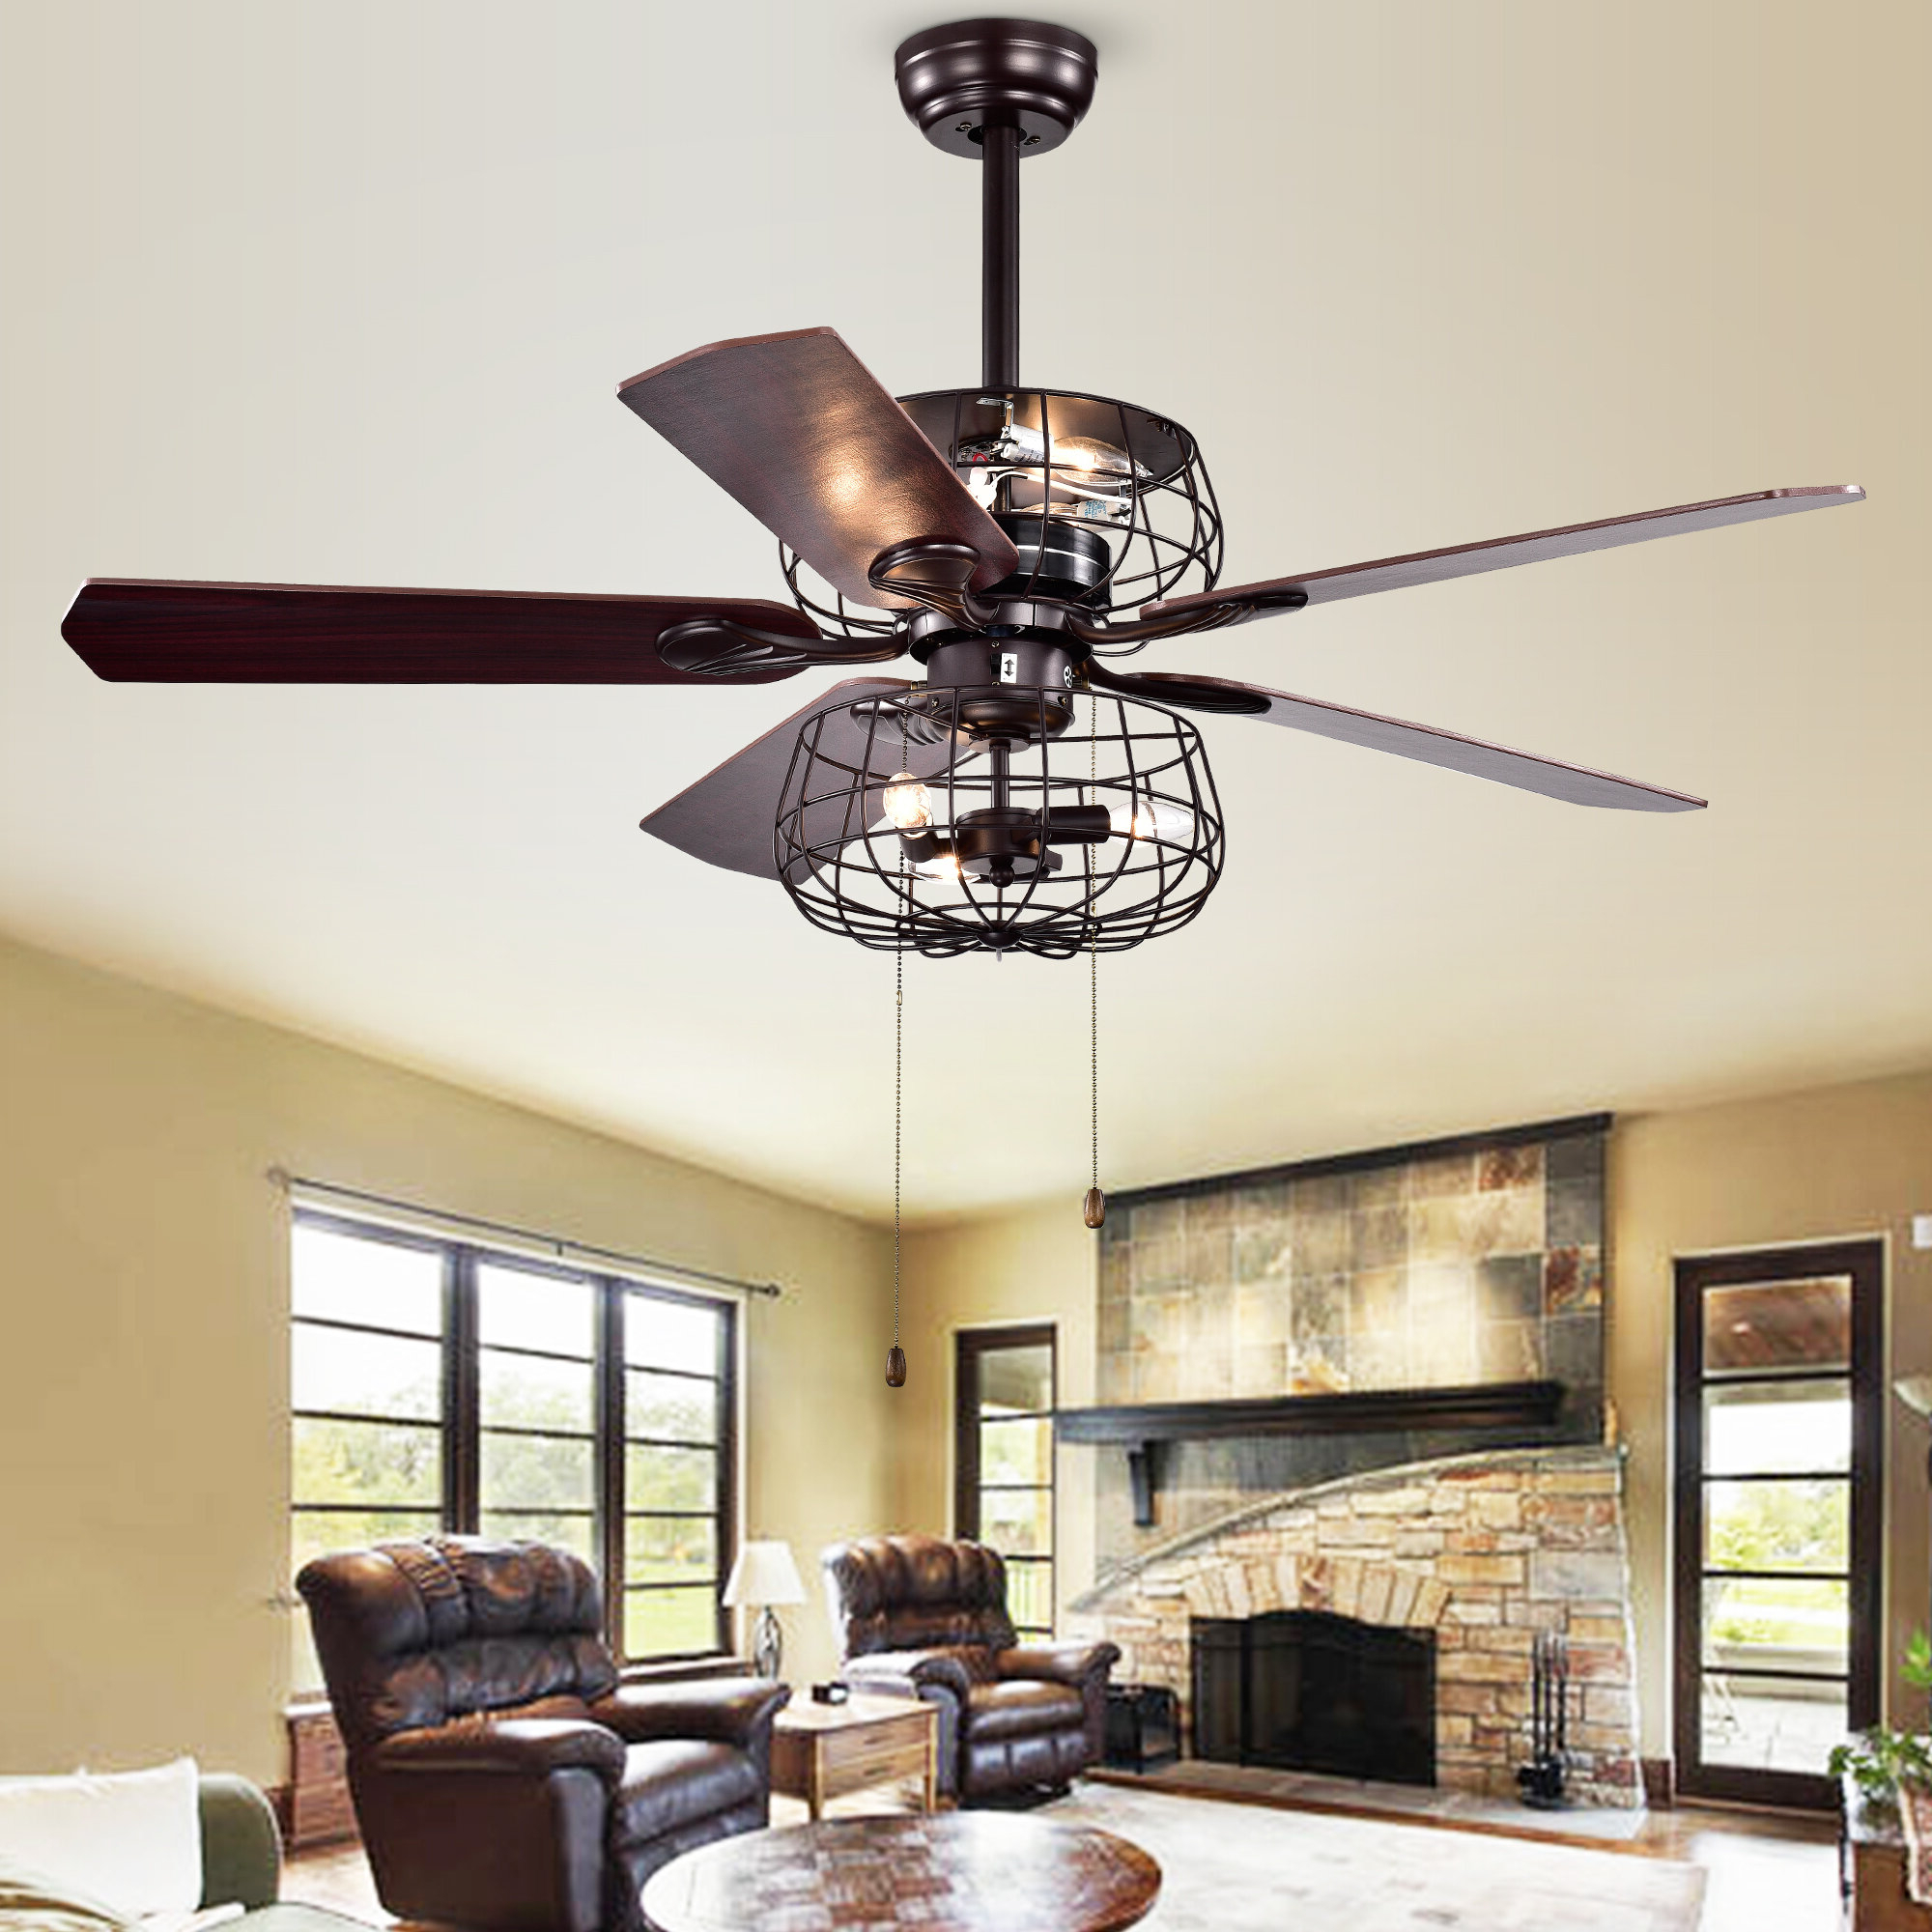 2019 Cranbrook 4 Blade Ceiling Fans With Regard To Kaiya 5 Blade Ceiling Fan, Light Kit Included (Gallery 8 of 20)